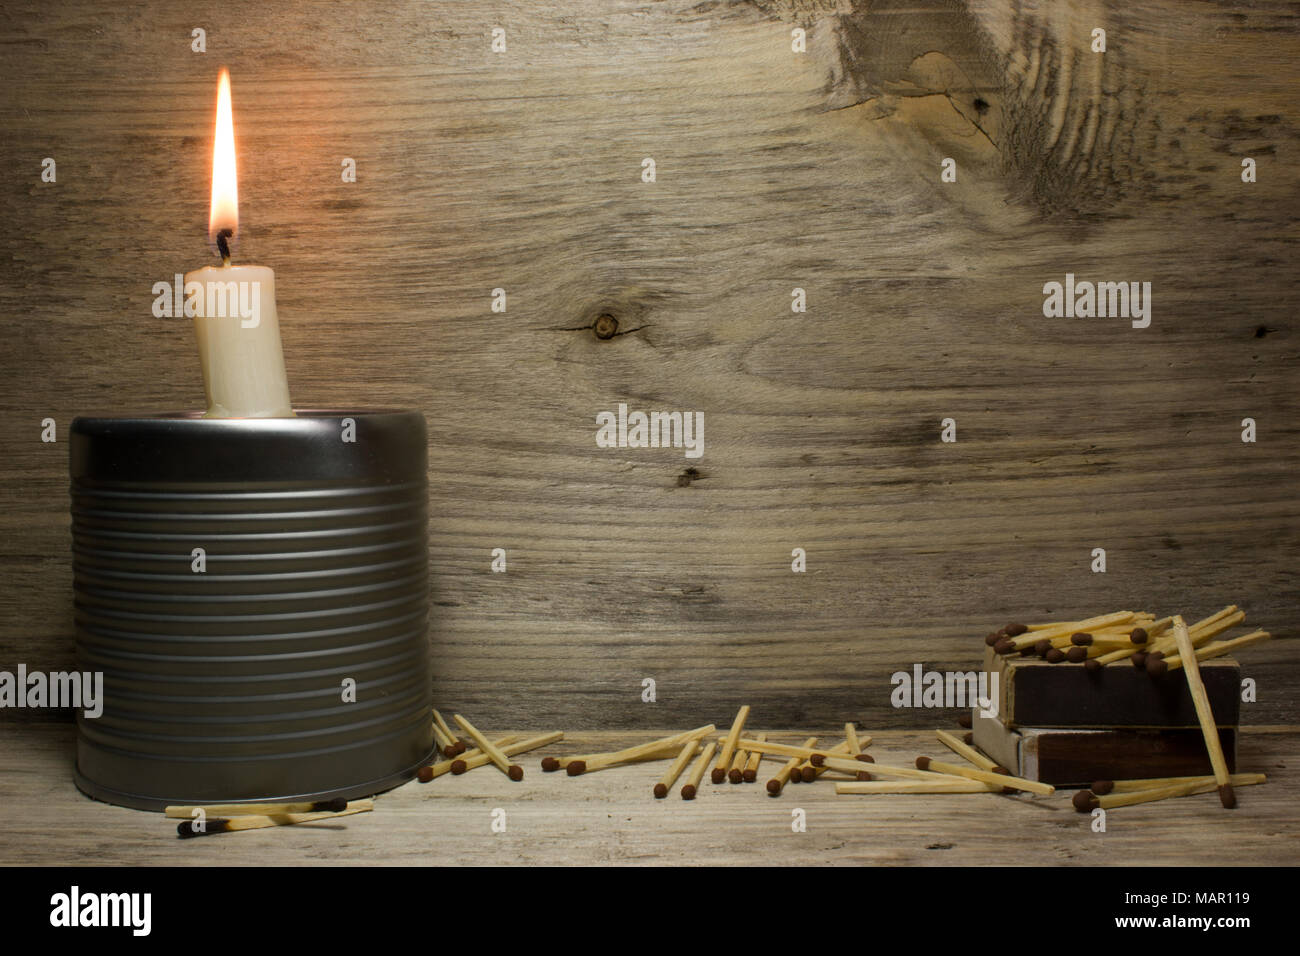 Matches and a burning candle on wooden background - Stock Image